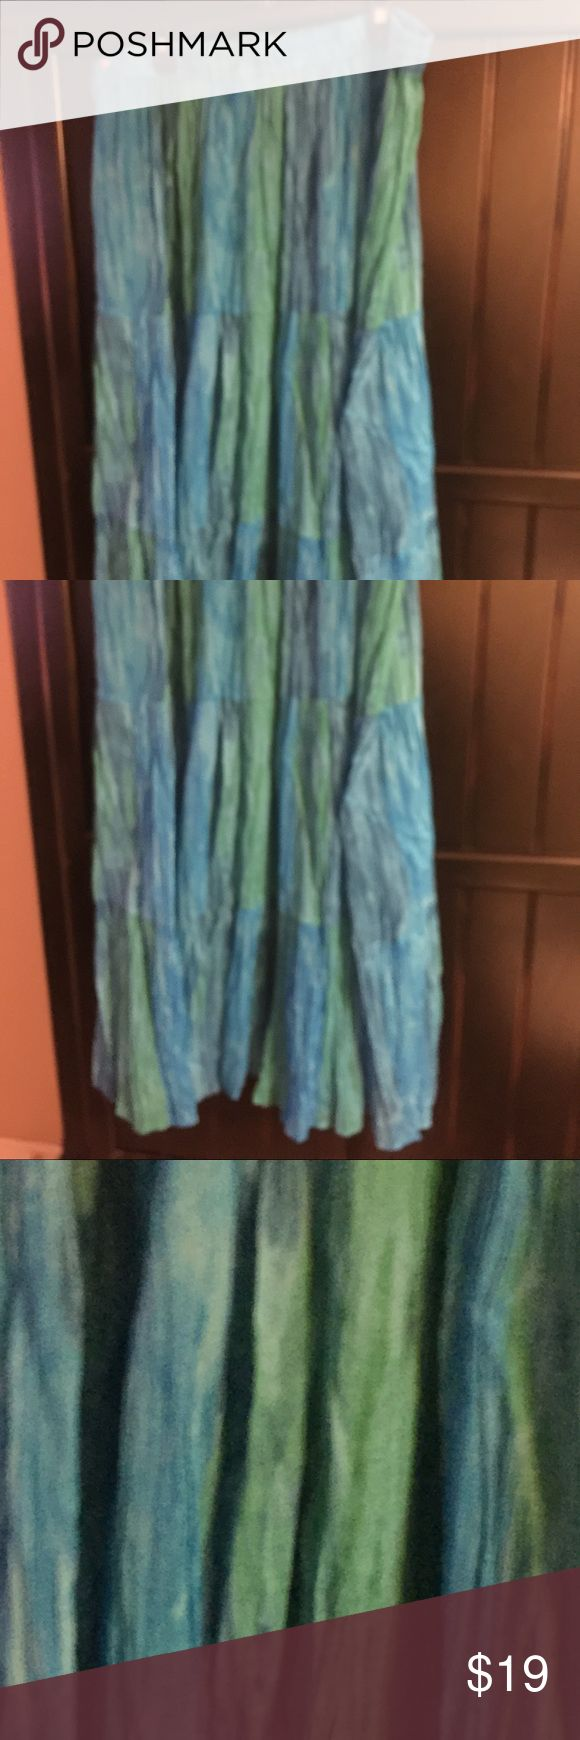 Collections ETC Blue Green Maxi Skirt SZ XL Beautiful skirt mAde of light flowing material. You can see thru this if you really want to do it may be good for over a swimsuit. Pictures don't do justice it is gorgeous. Size XL will fit up to size 20 collections ETC Skirts Maxi